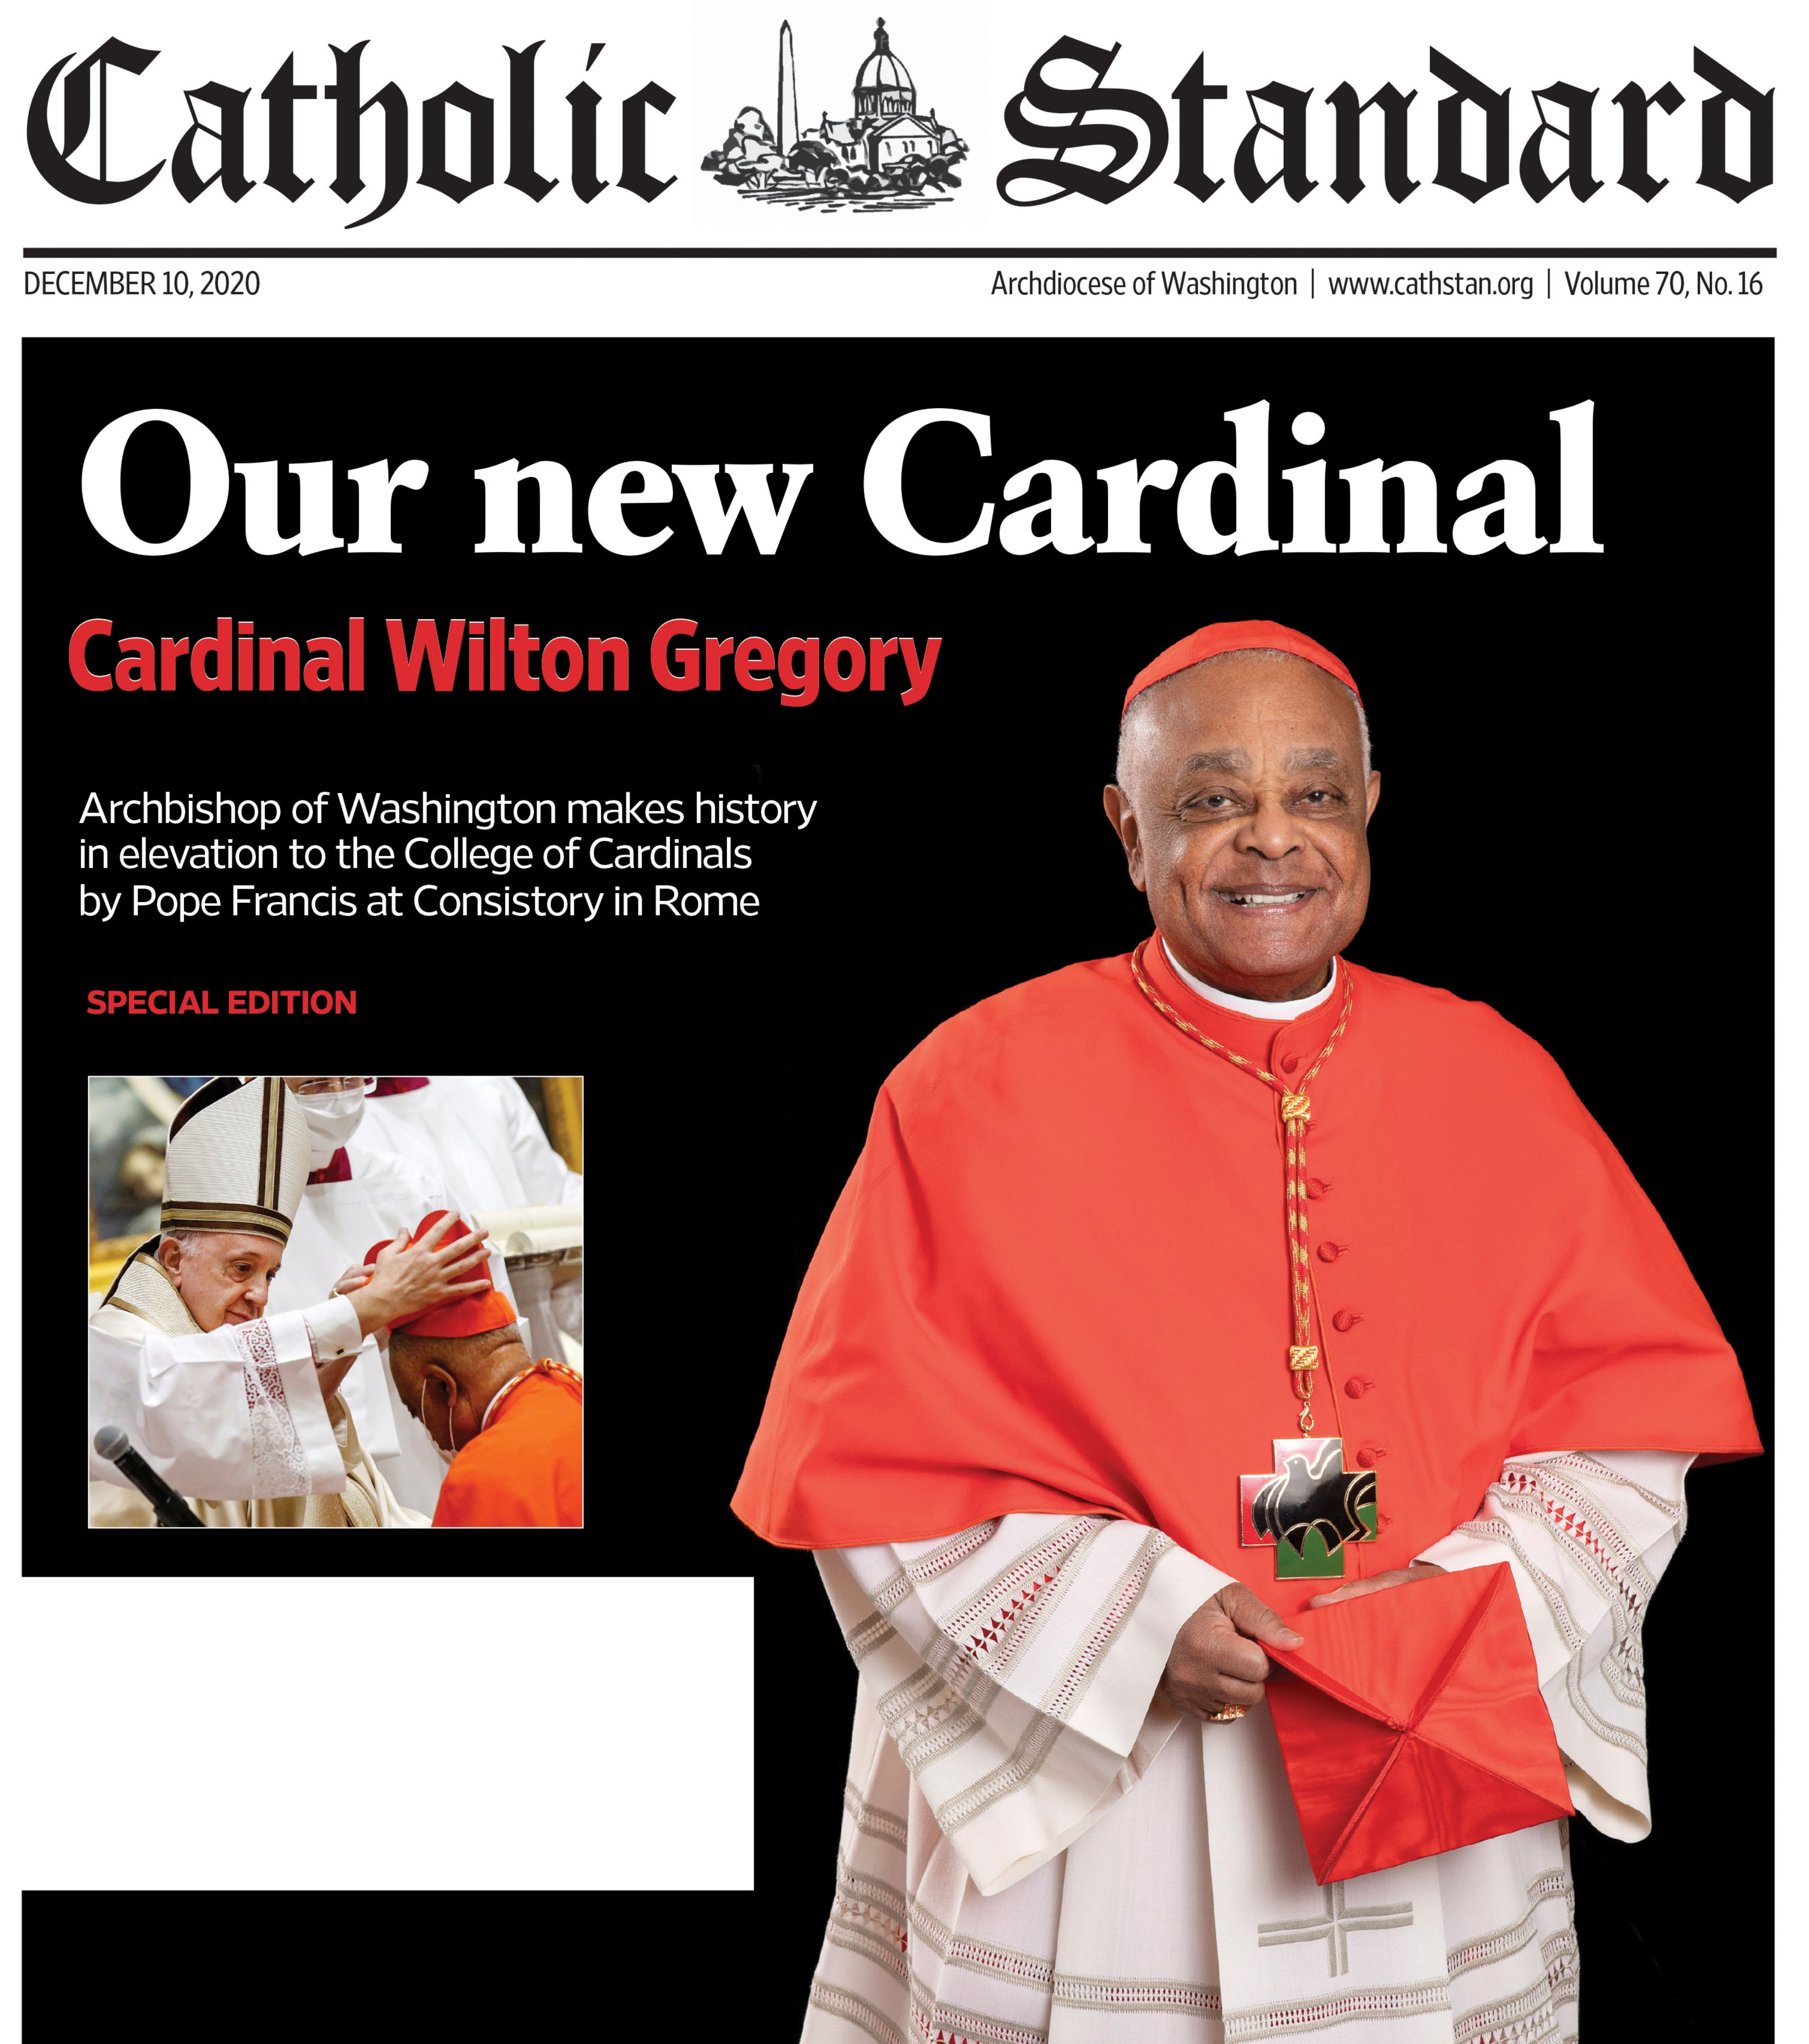 Catholic Standard I December 10, 2020